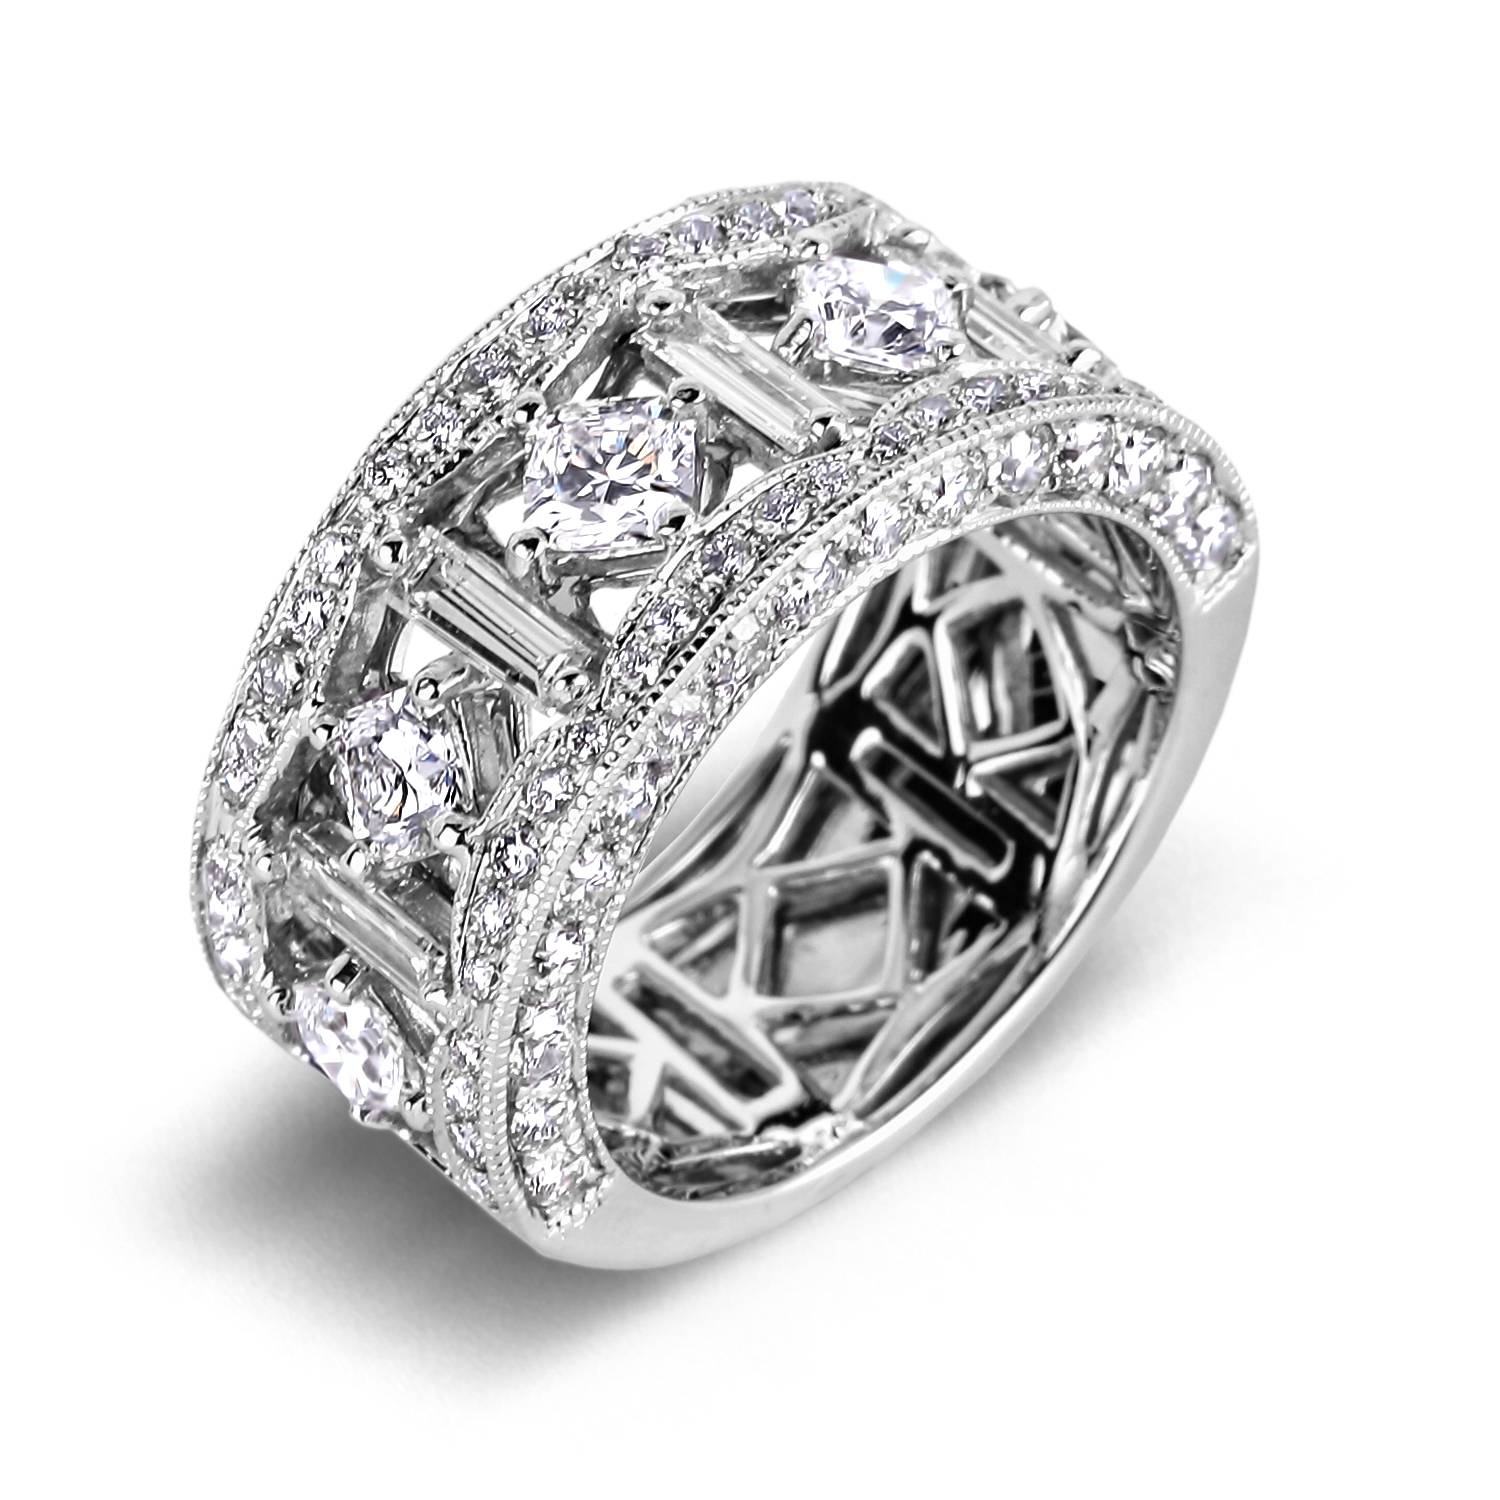 Wedding Anniversary Rings Diamonds | Wedding Ideas Throughout Latest Diamond Anniversary Rings (View 24 of 25)